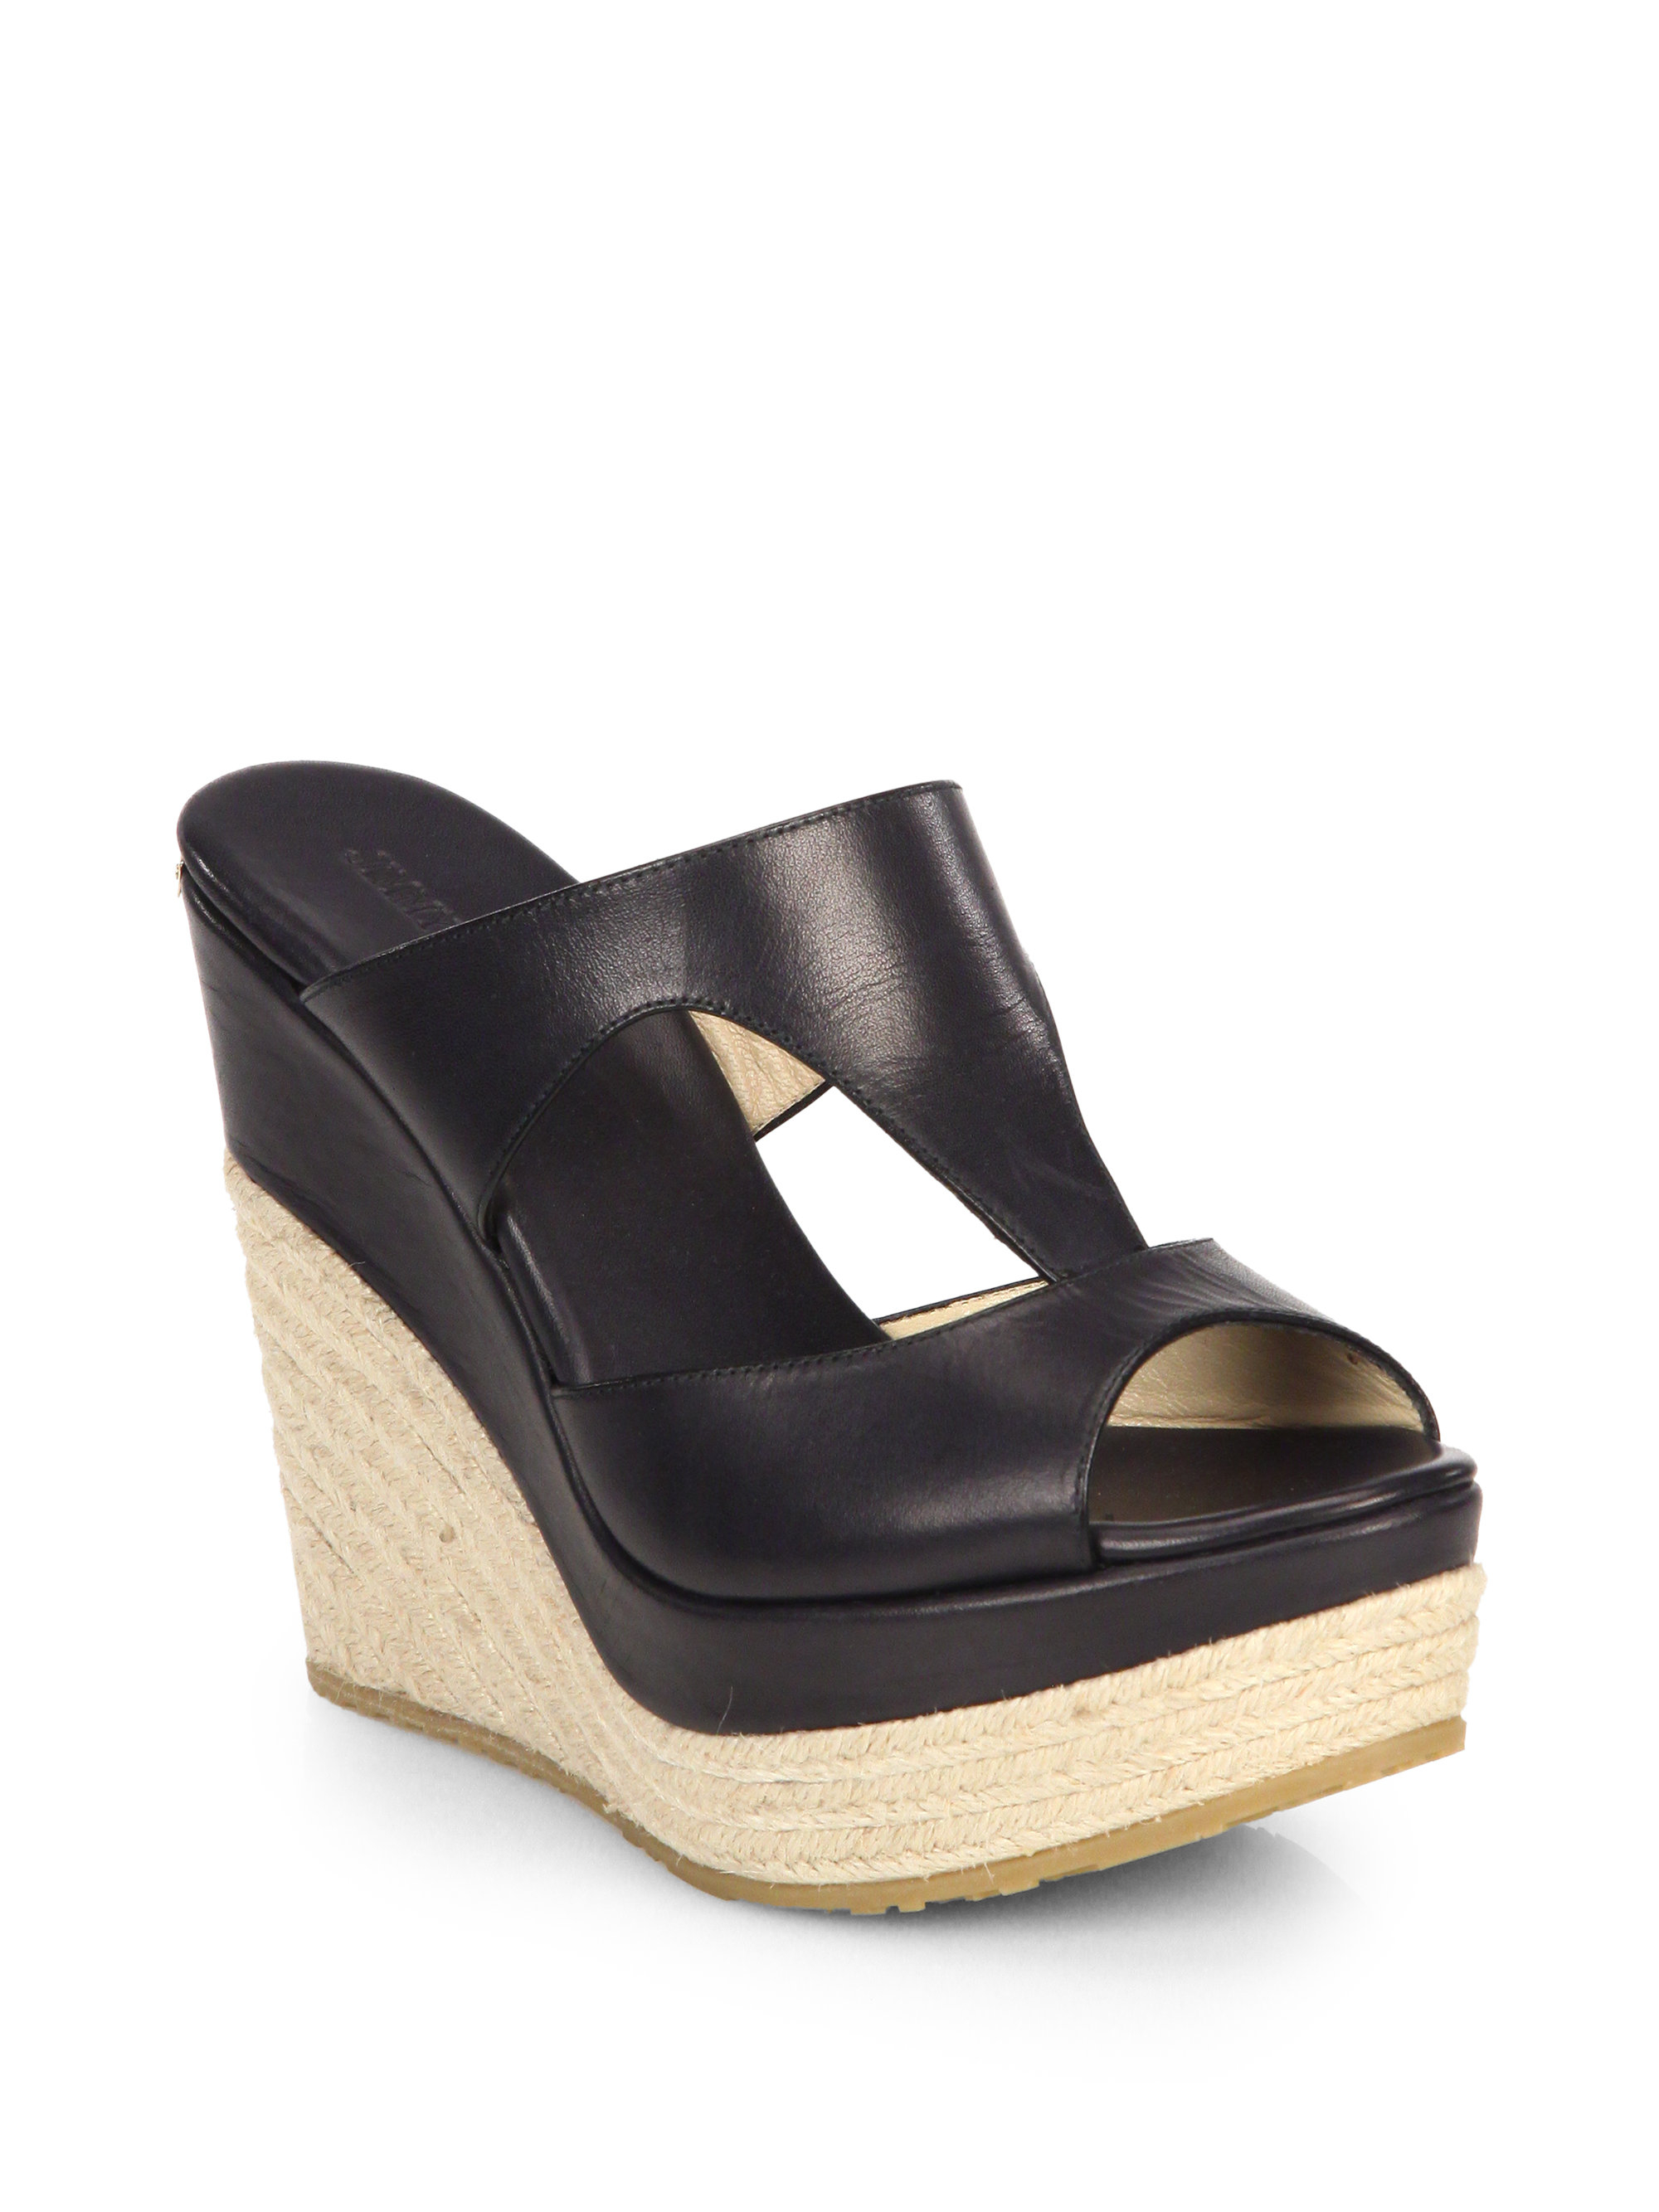 7407fe6052431 ... czech lyst jimmy choo cut out leather platform wedge espadrilles in  black f47e4 d3c61